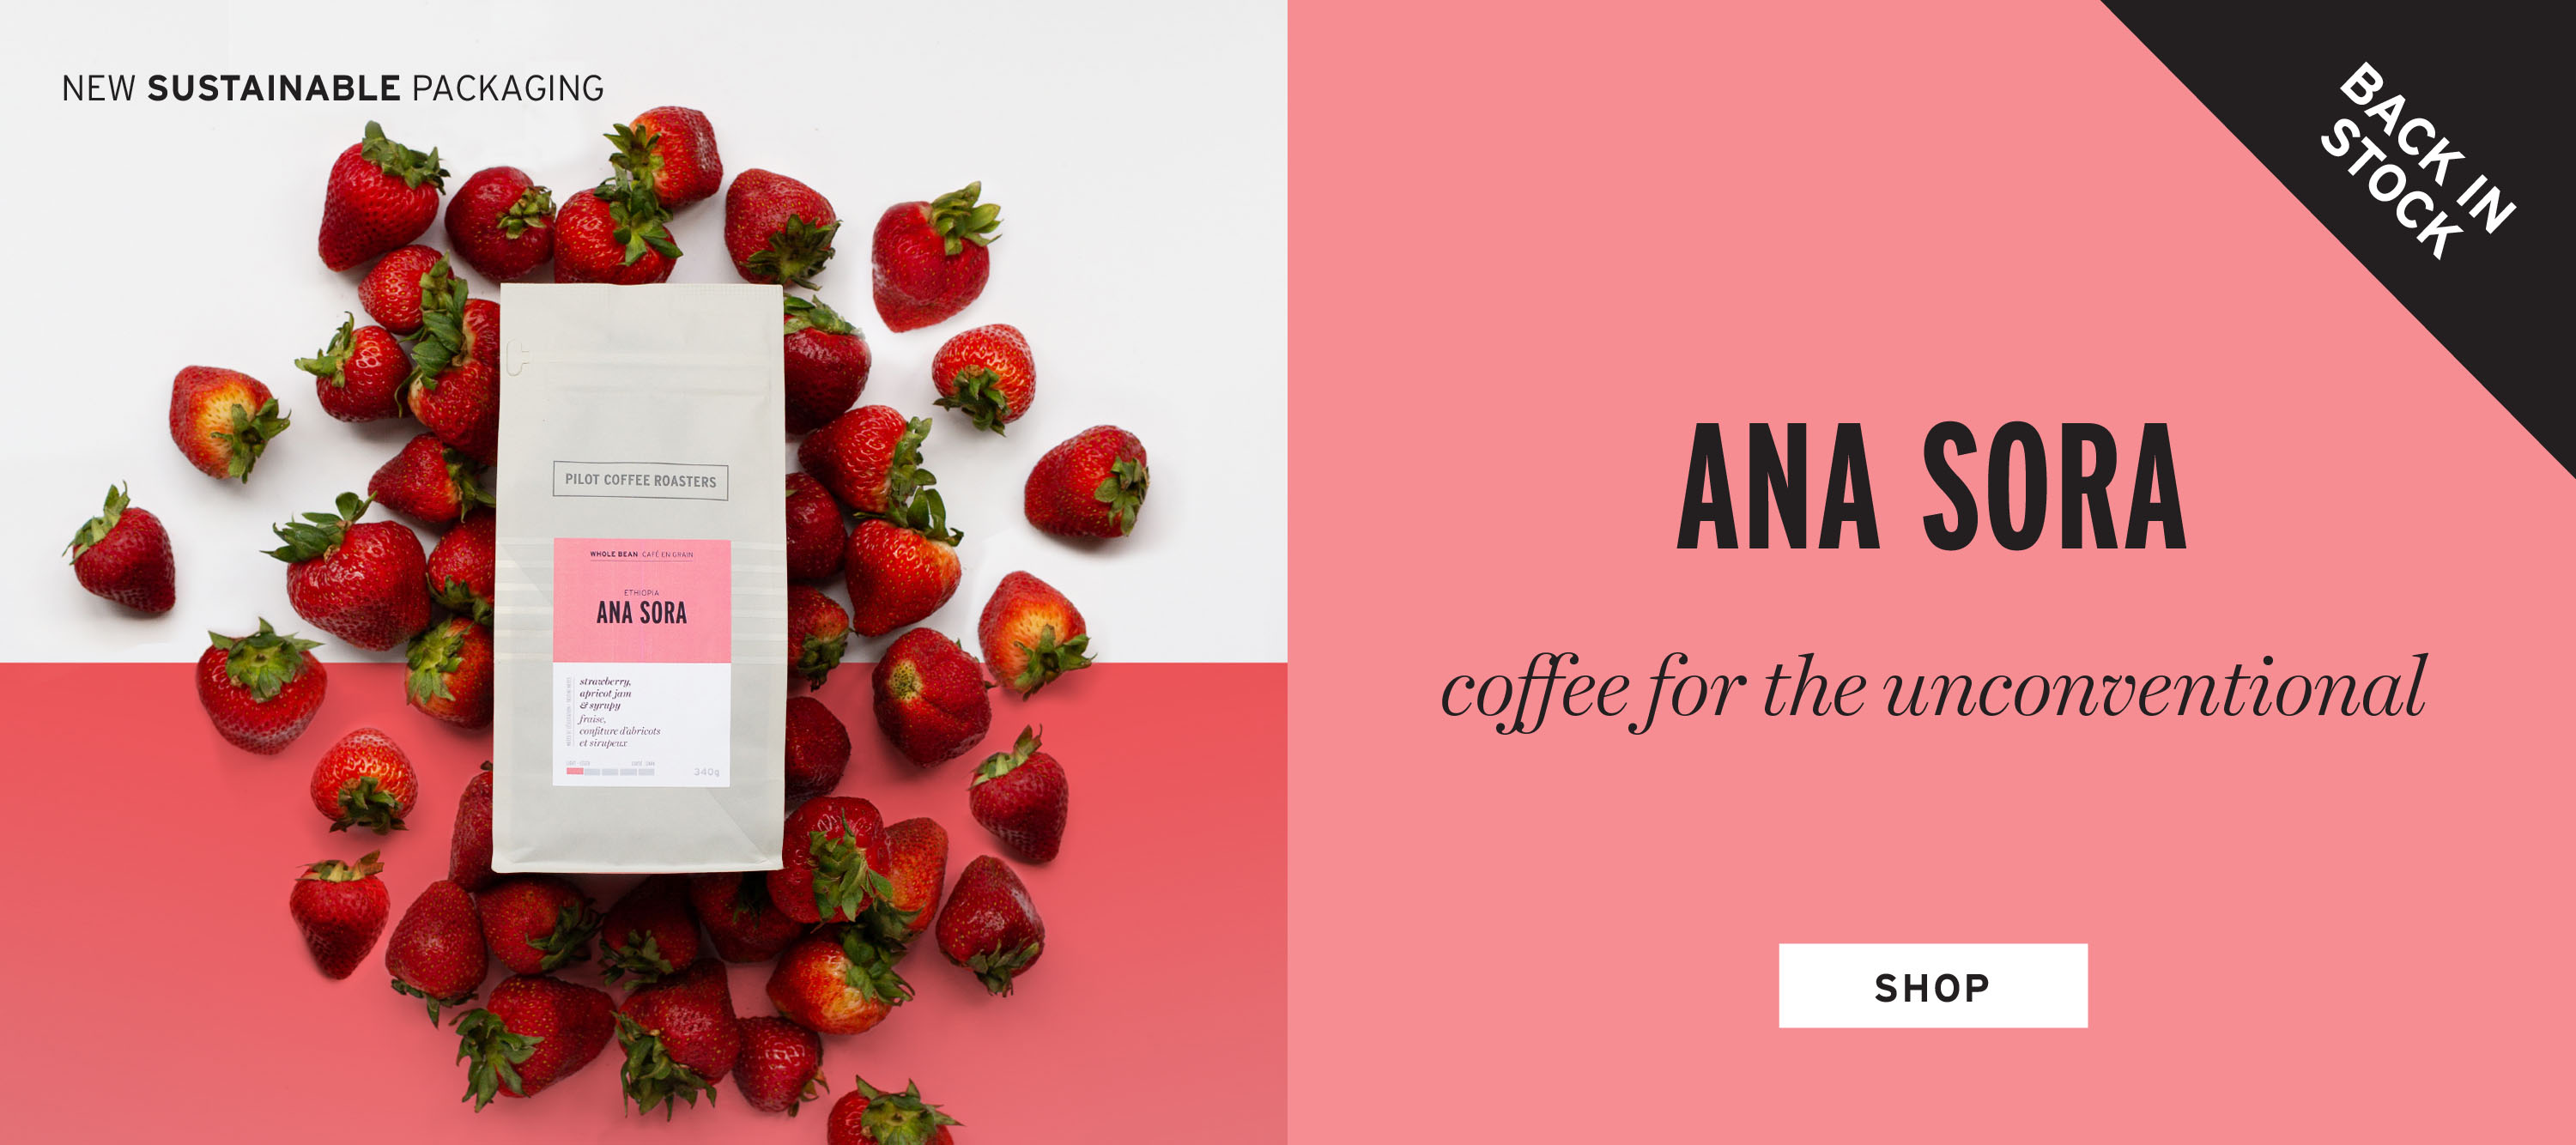 BACK IN STOCK! Ana Sora from Ethiopia has returned.